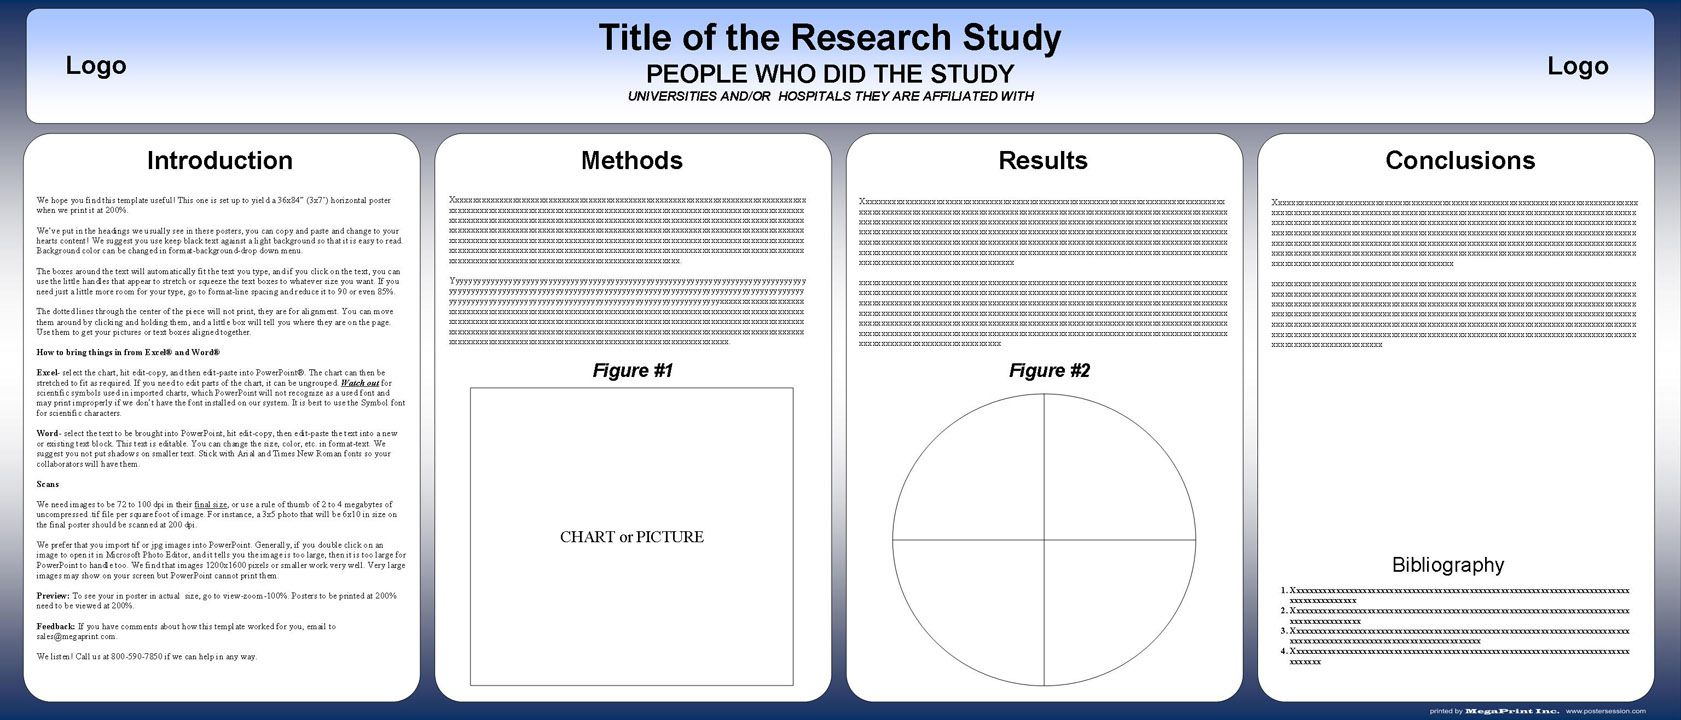 003 Surprising Research Poster Template Powerpoint Photo  Scientific PptFull